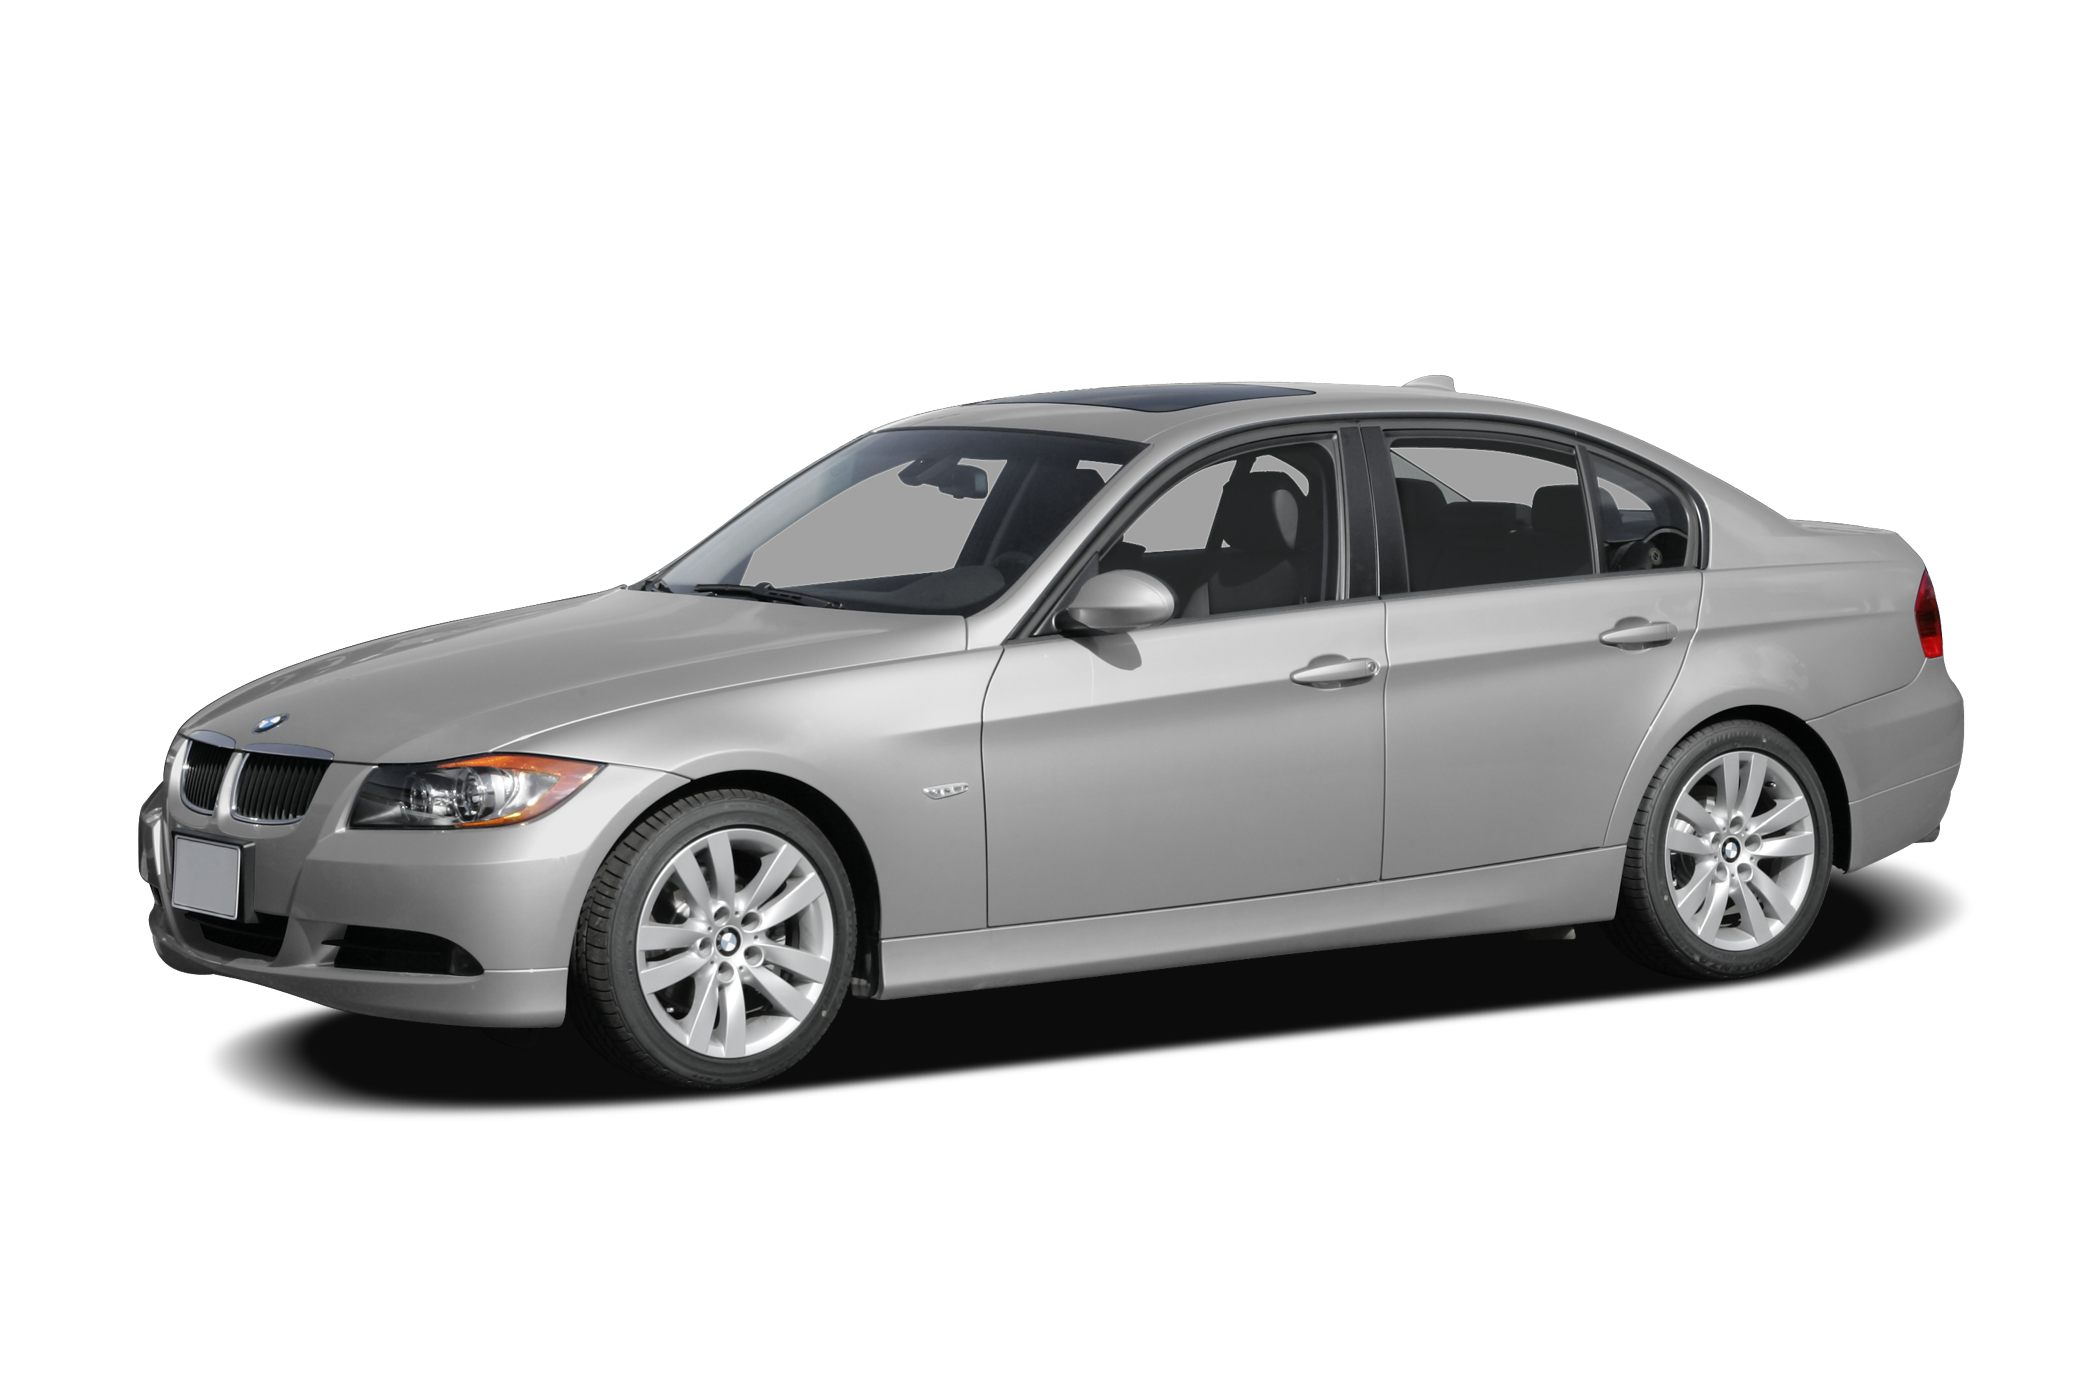 2007 BMW 335 I Convertible for sale in Watertown for $21,995 with 55,439 miles.